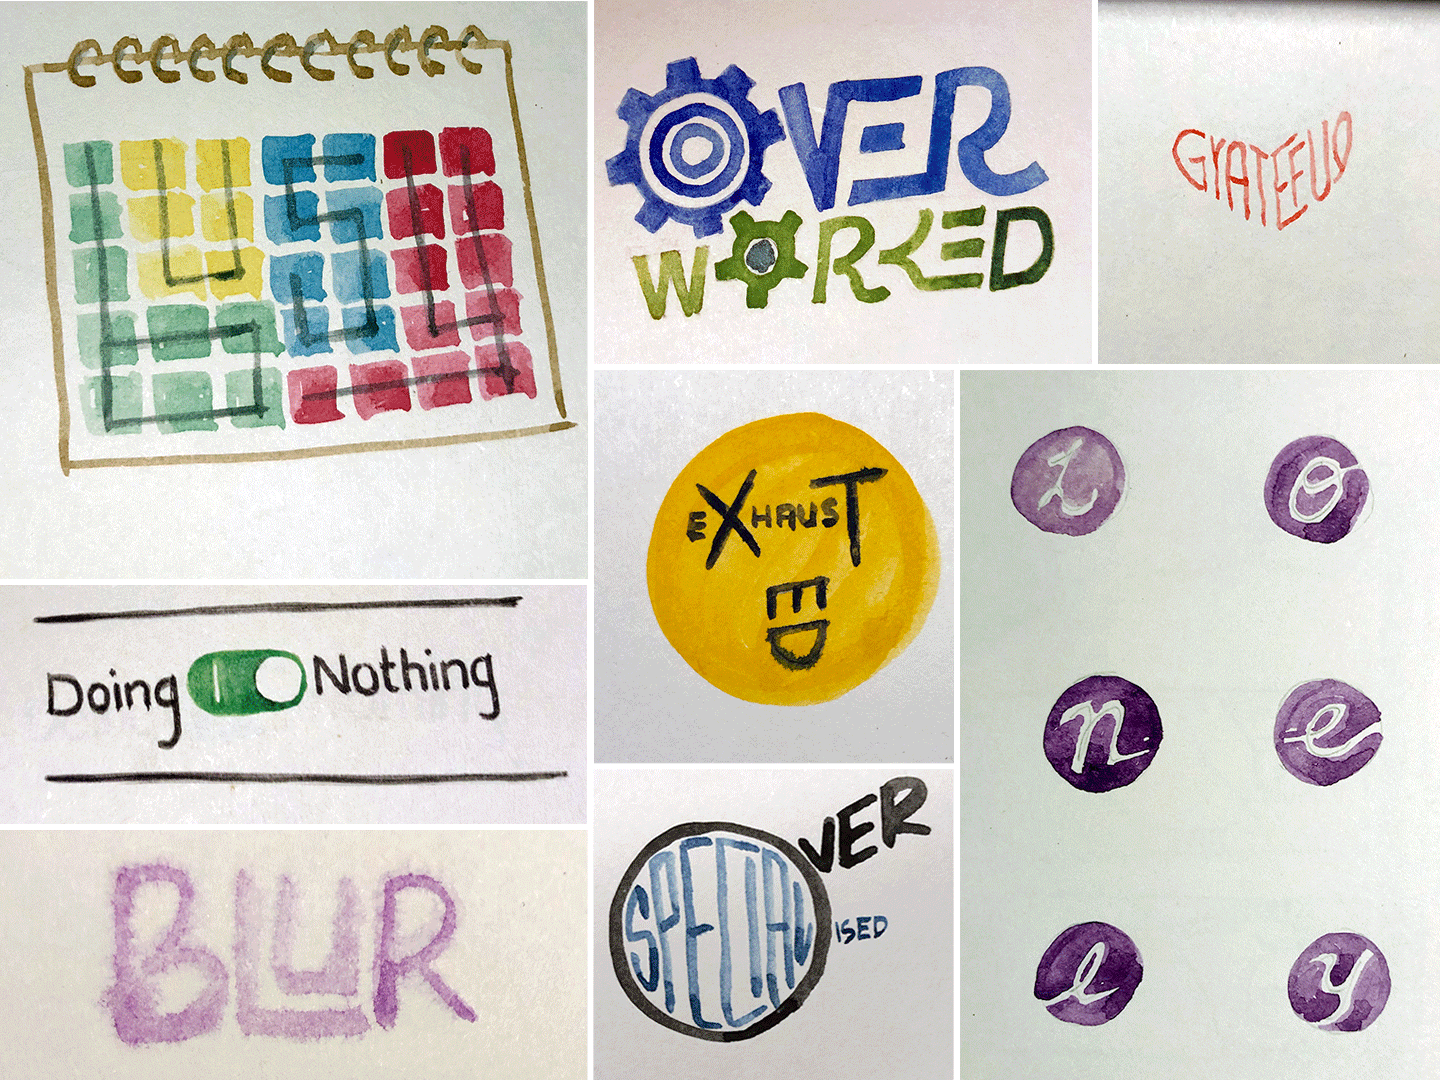 Collage of expressive typography using watercolours. The words expressed are: Busy, Doing Nothing, Blur, Over-worked, Exhausted, Overspecialised, Grateful and Lonely.